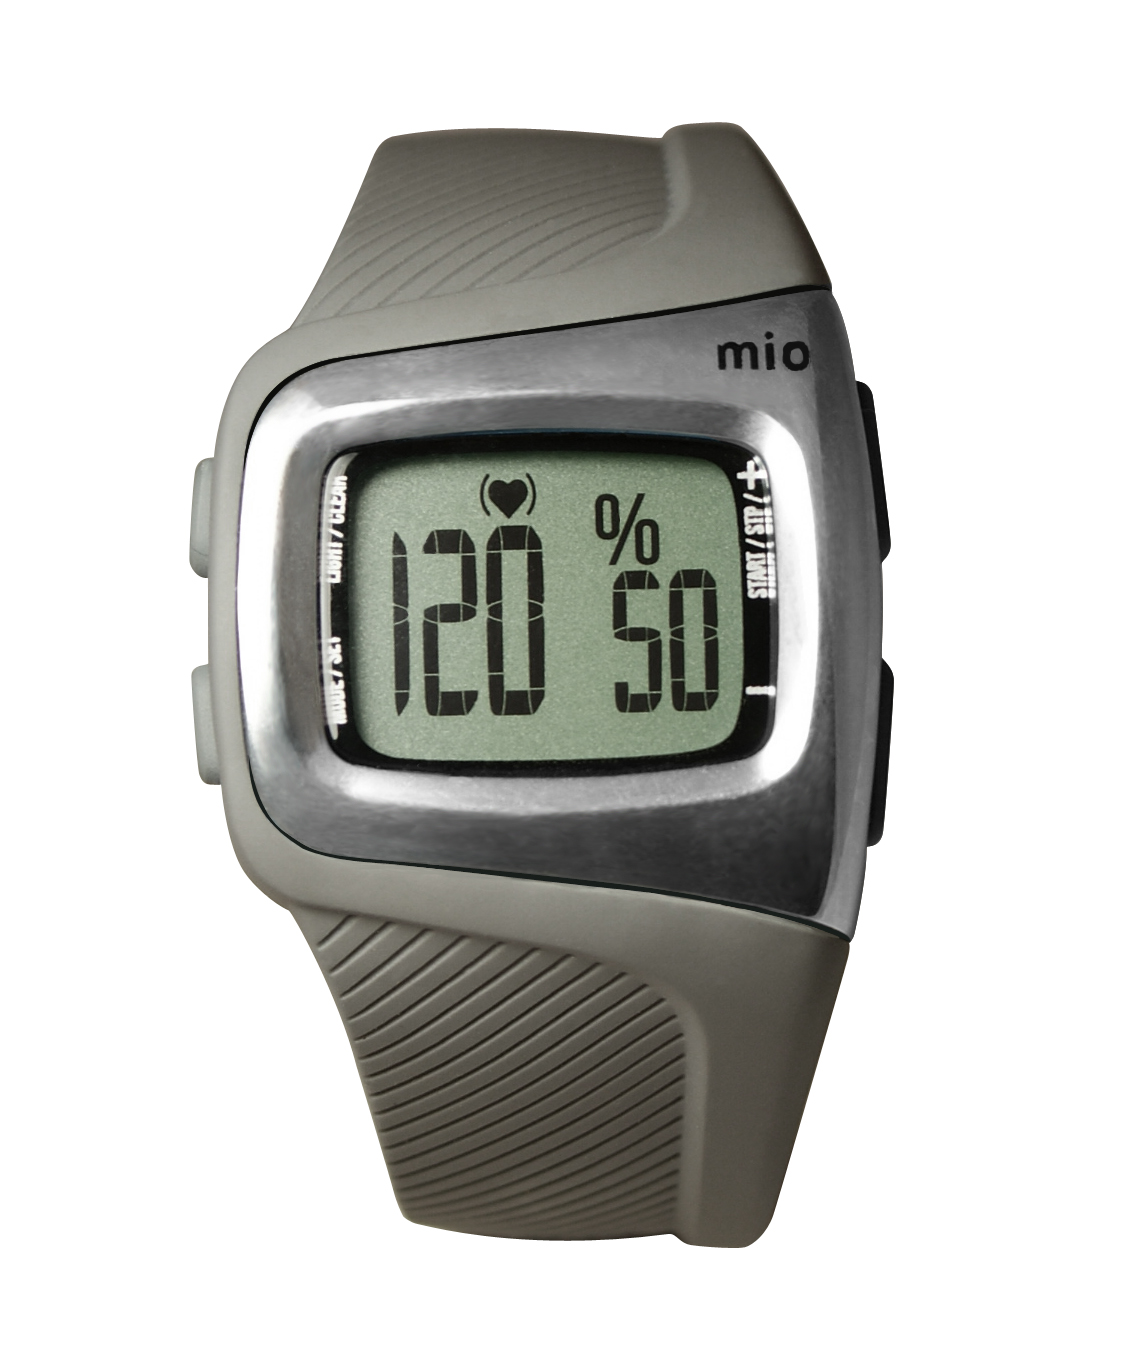 Running Series III Sports Star III Calories for Men and Women without Mio Maio Heart Rate Watch